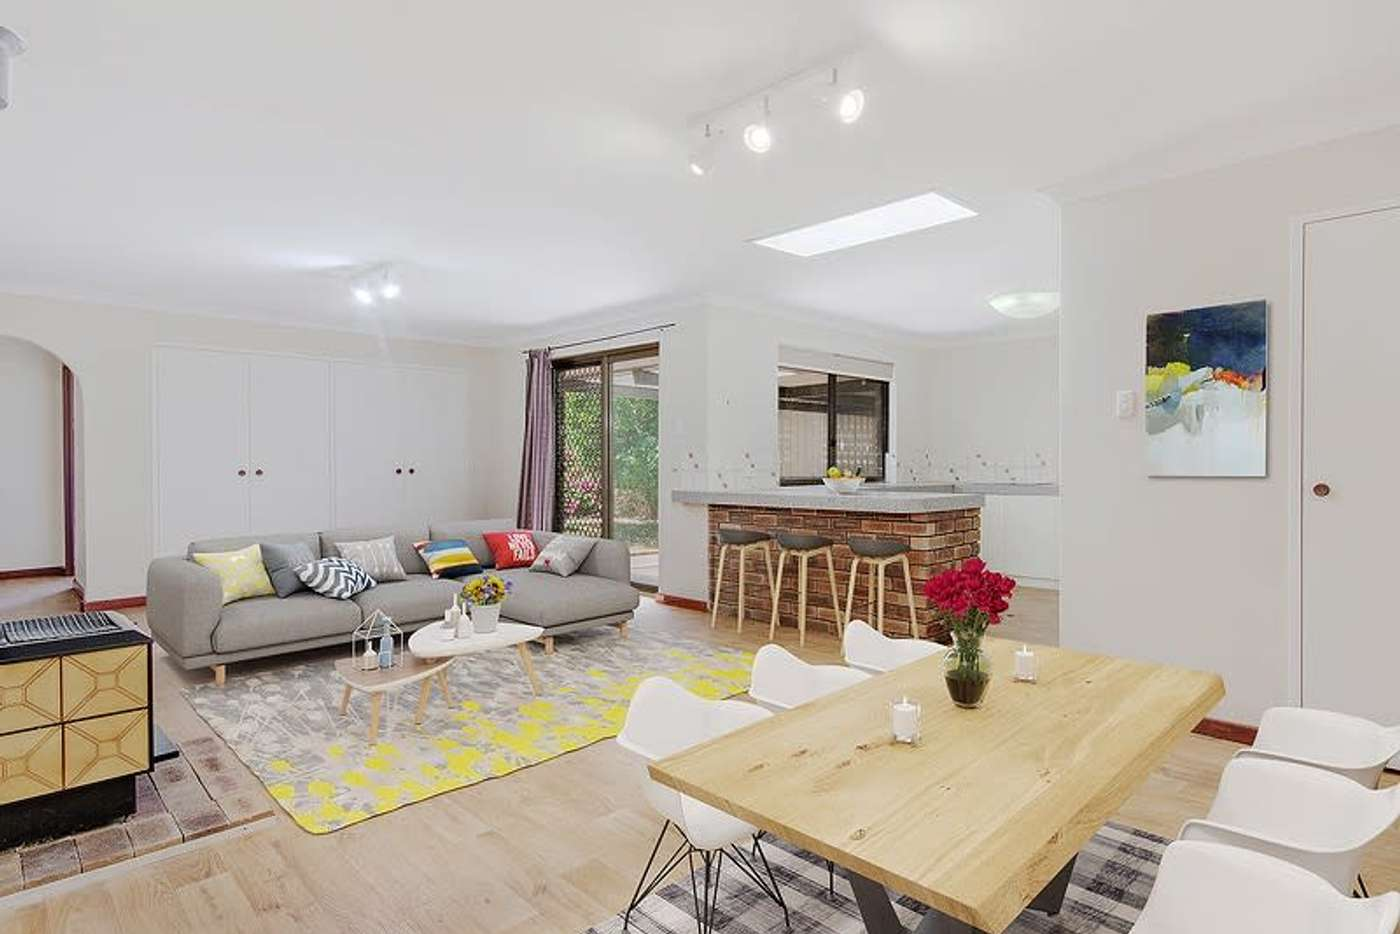 Main view of Homely house listing, 18 Milina Street, Hillman WA 6168